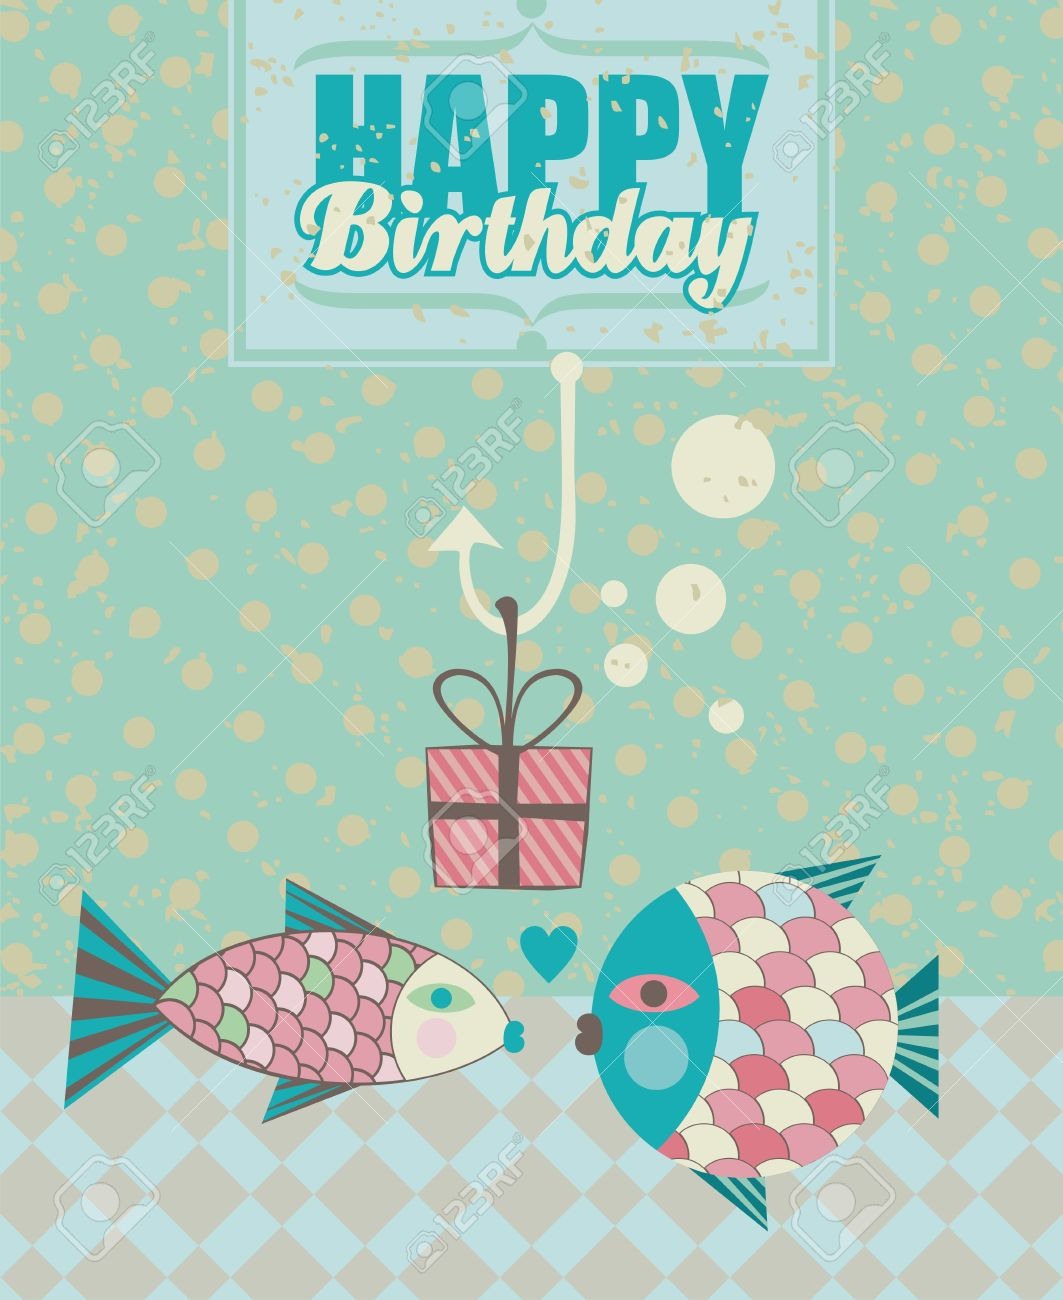 Birthday Card With Happy Fish Couple And Present Box In Fishing – Fish Birthday Card